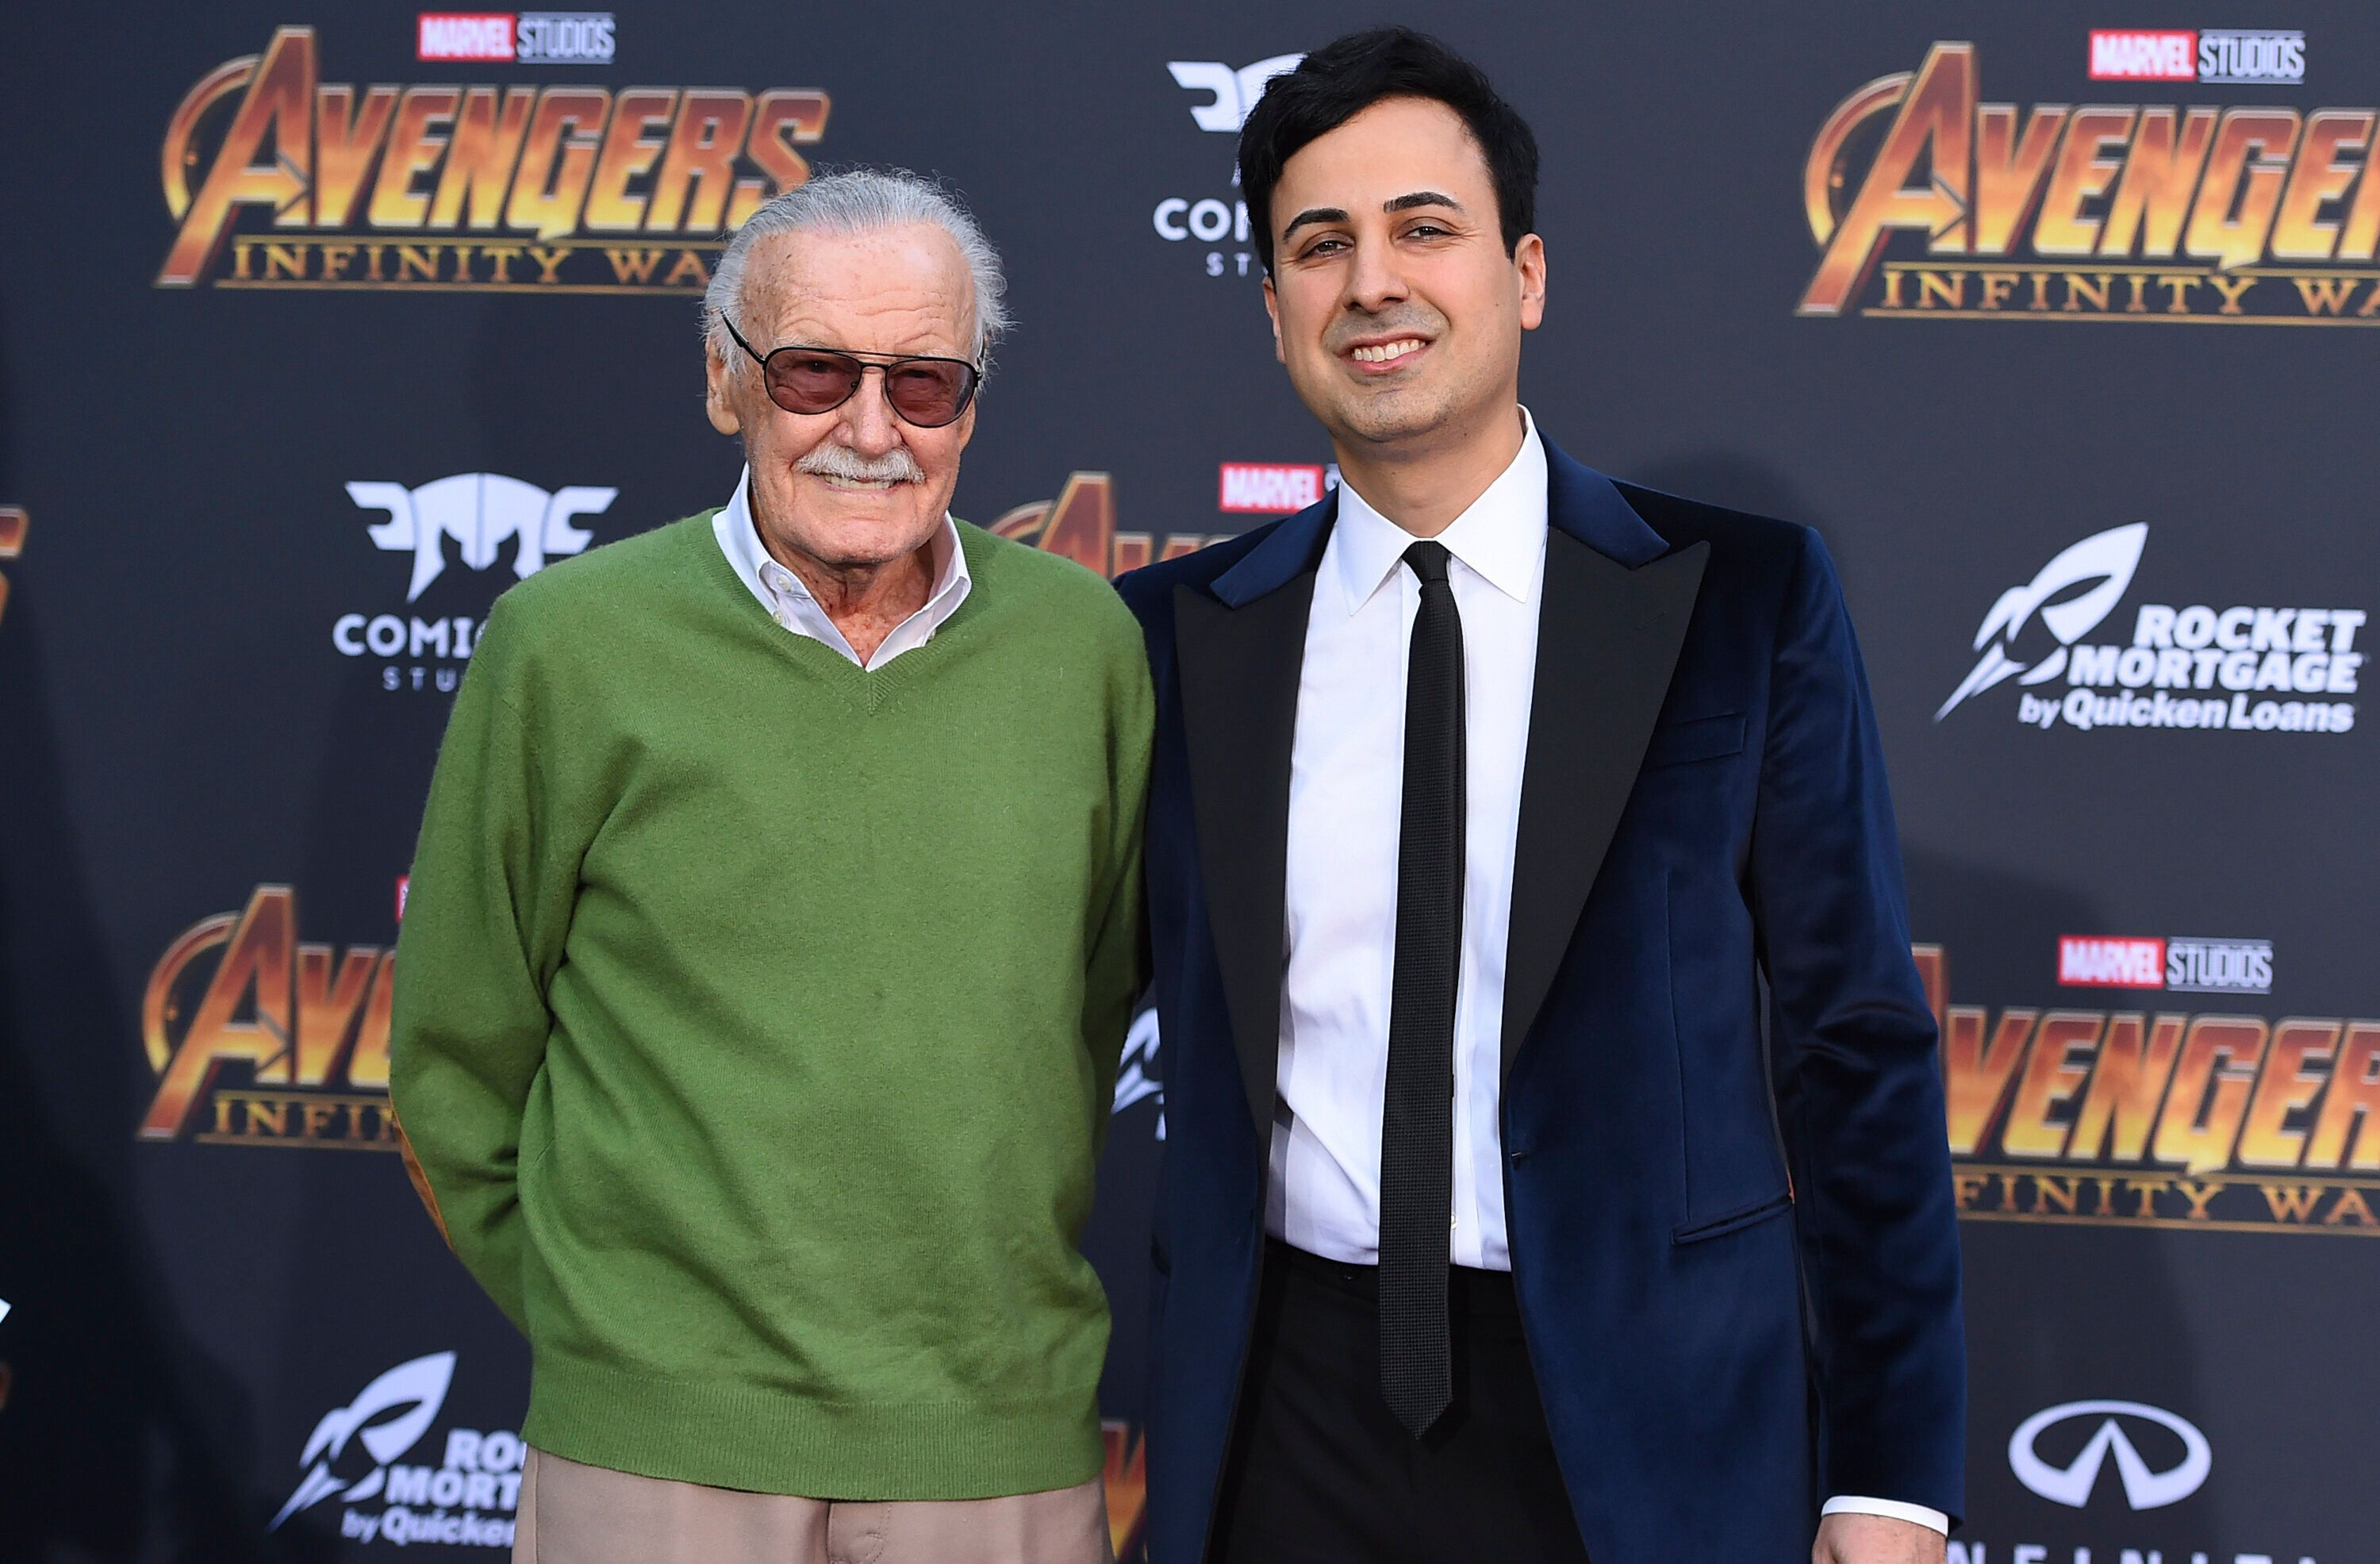 "FILE - In this April 23, 2018, file photo, Stan Lee, left, and Keya Morgan arrive at the world premiere of ""Avengers: Infinity War"" in Los Angeles. Attorney Alex Kessel entered a not-guilty plea in Los Angeles Superior Court on Monday, July 2, 2018, for Morgan, who is charged with calling 911 to report that detectives and a social worker conducting a welfare check on the 95-year-old Lee were burglars. (Photo by Jordan Strauss/Invision/AP, File)"